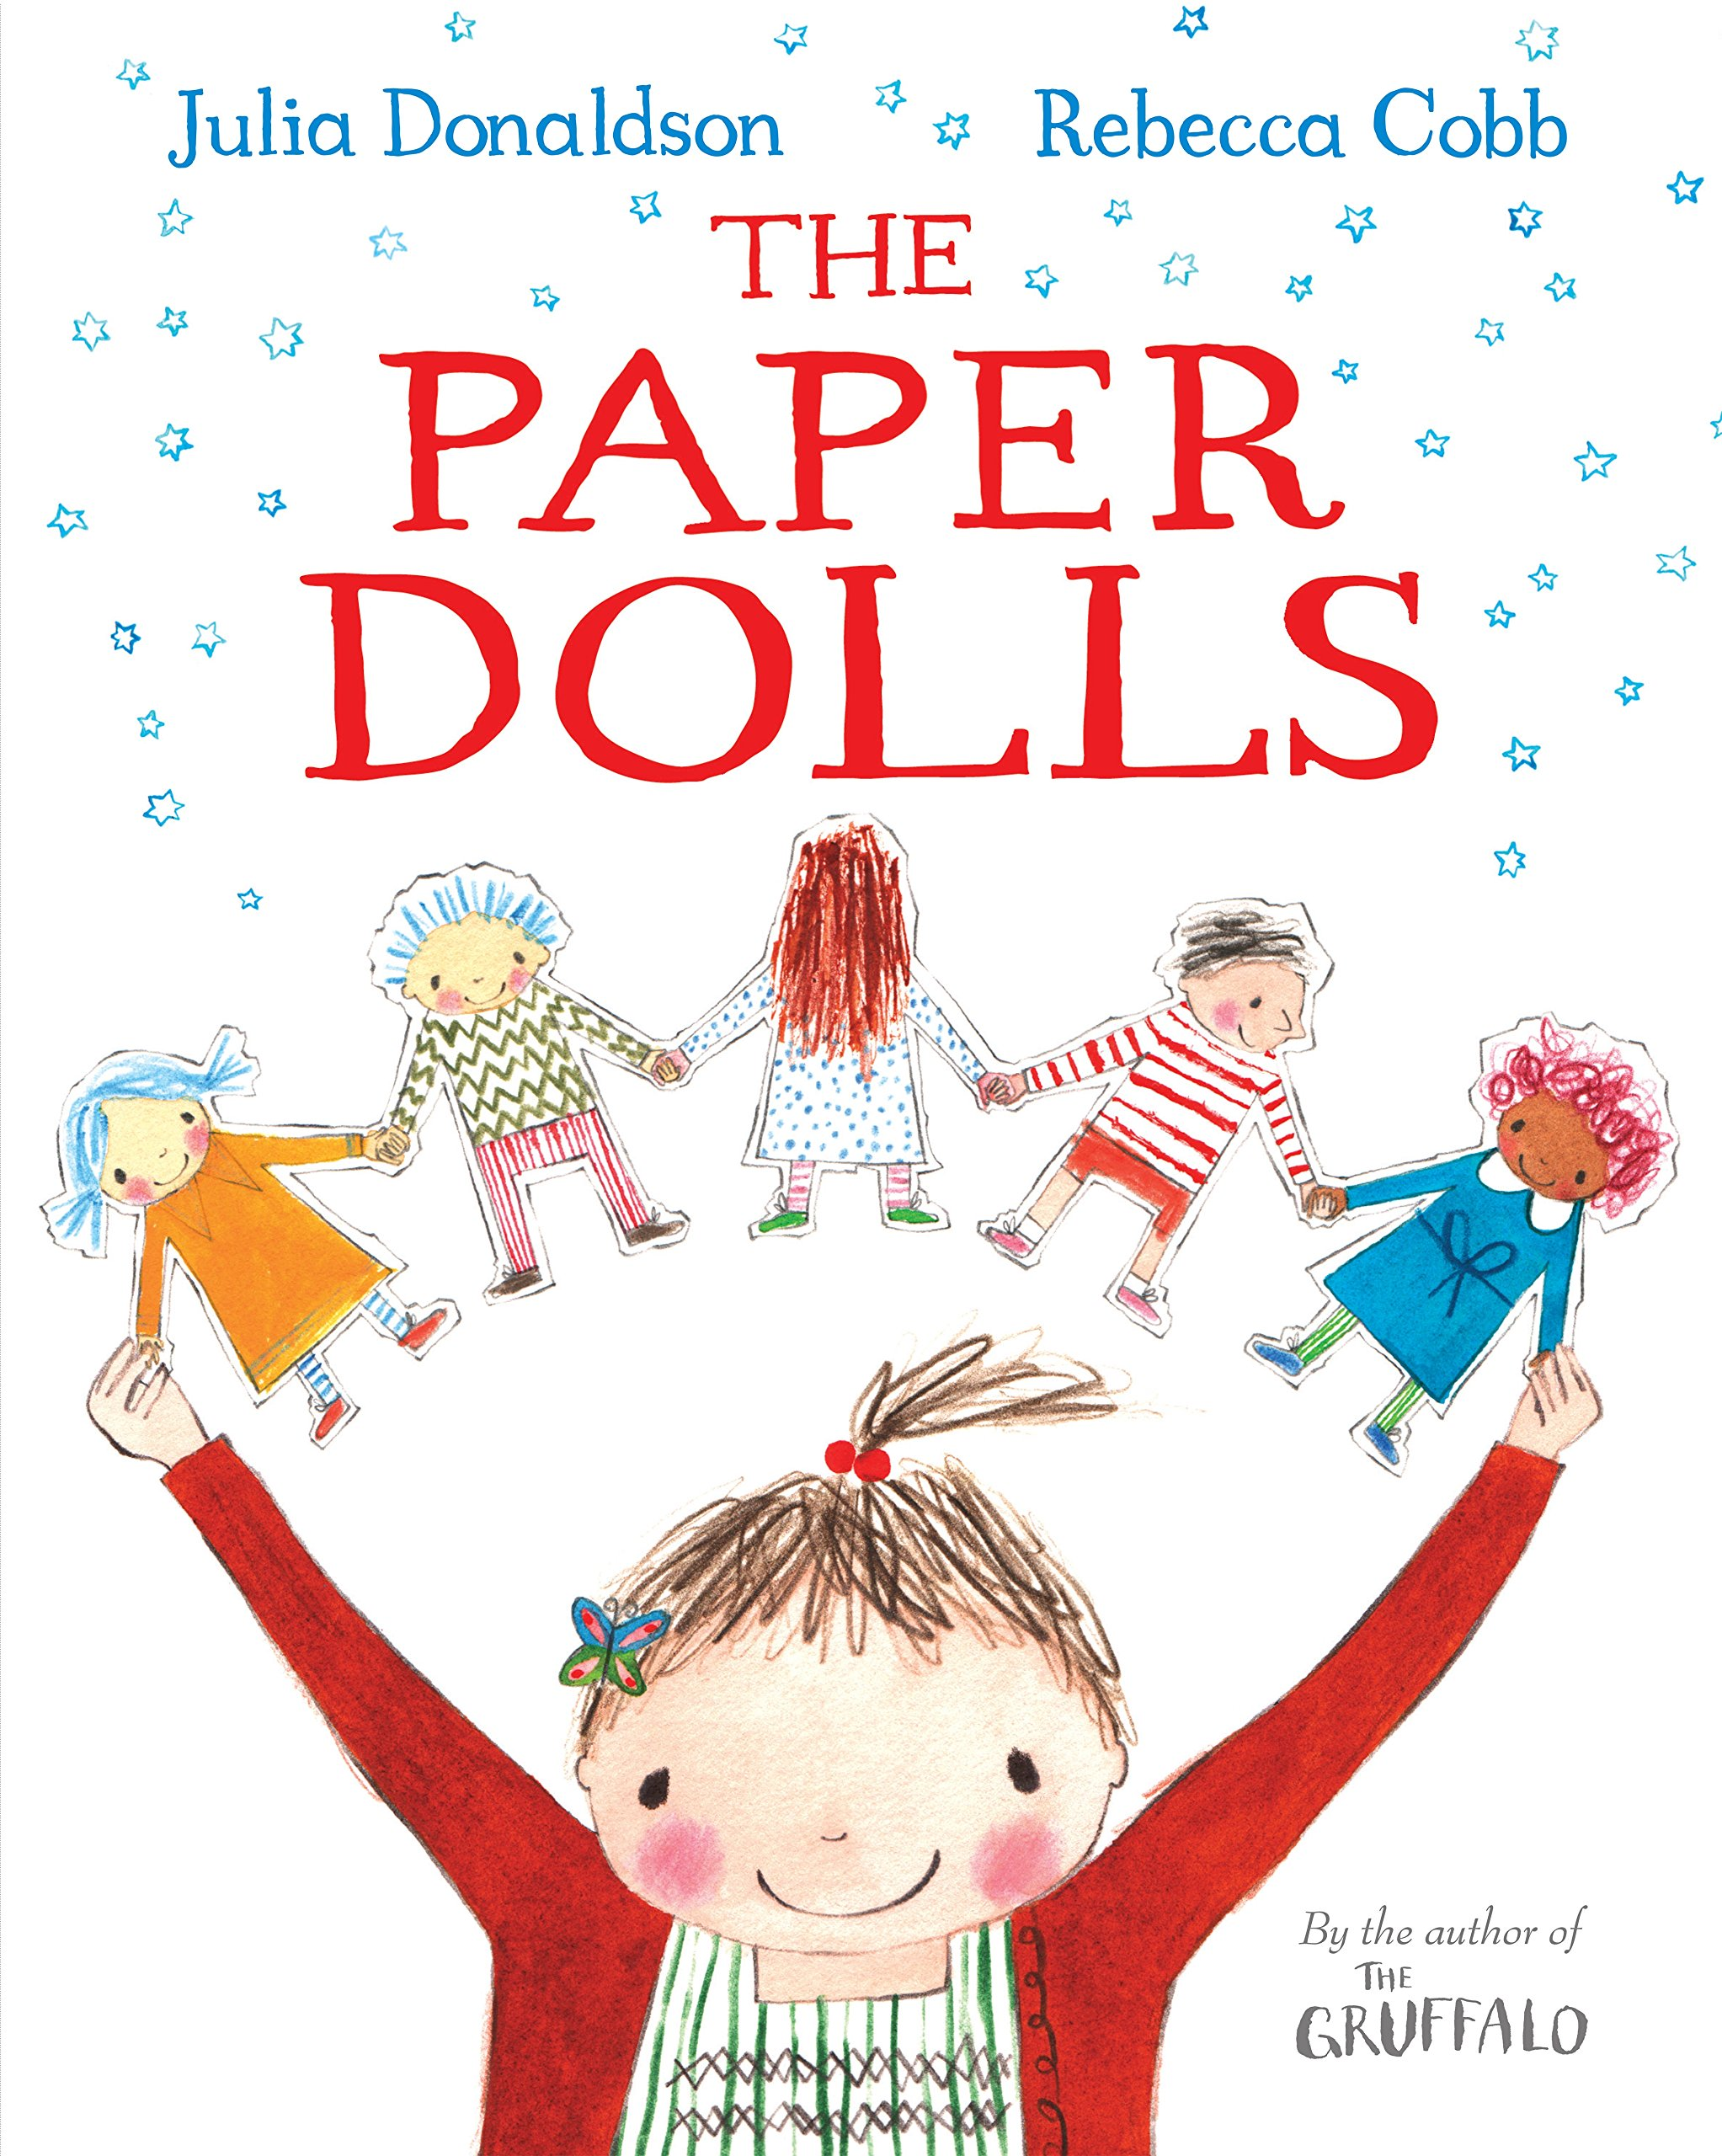 The Paper Dolls: Amazon.co.uk: Donaldson, Julia, Cobb, Rebecca: Books